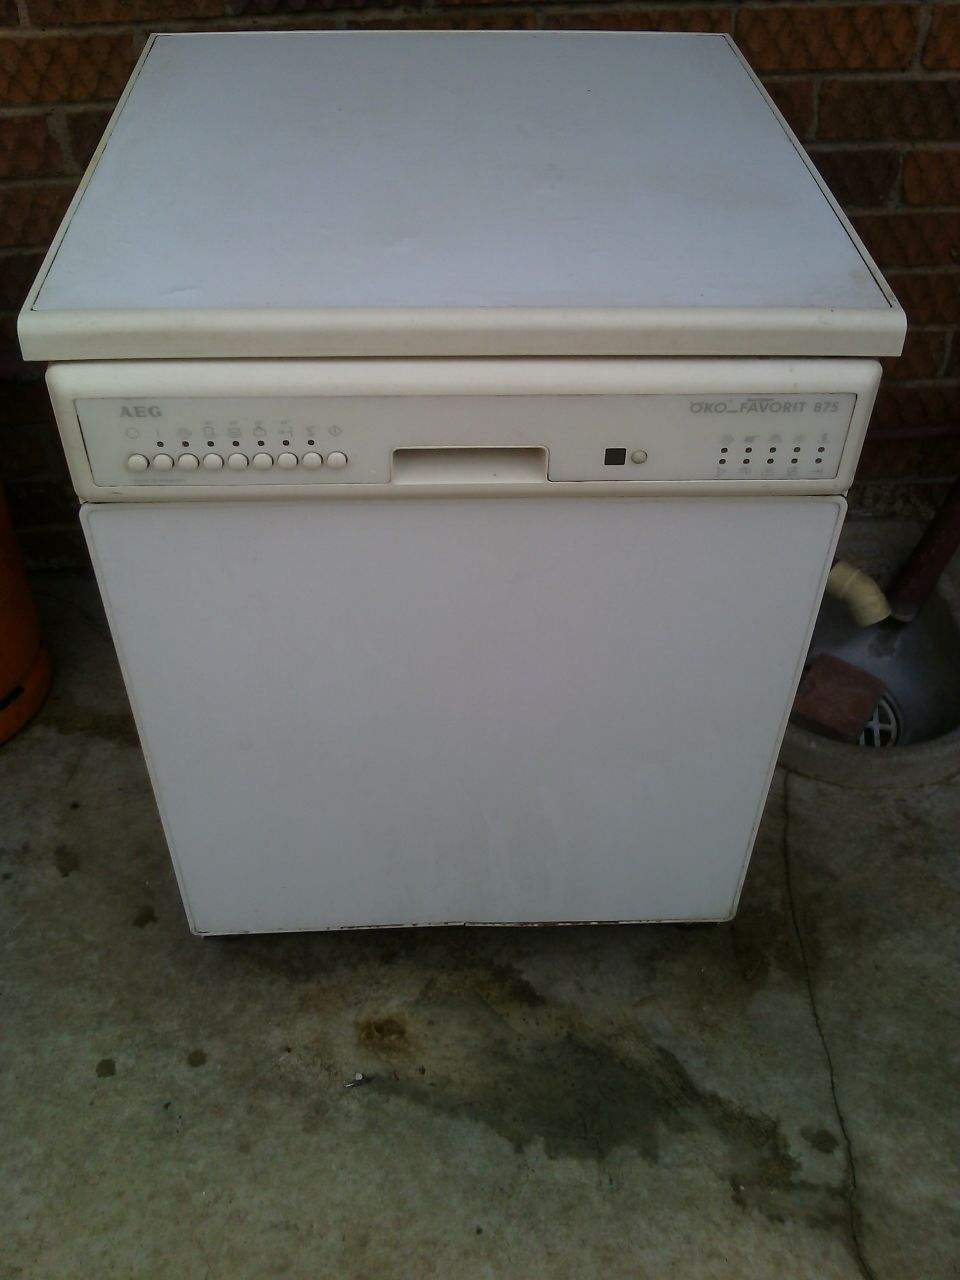 AIG second hand dishwasher, KIK fridge & Whirlpool vary chest freezer